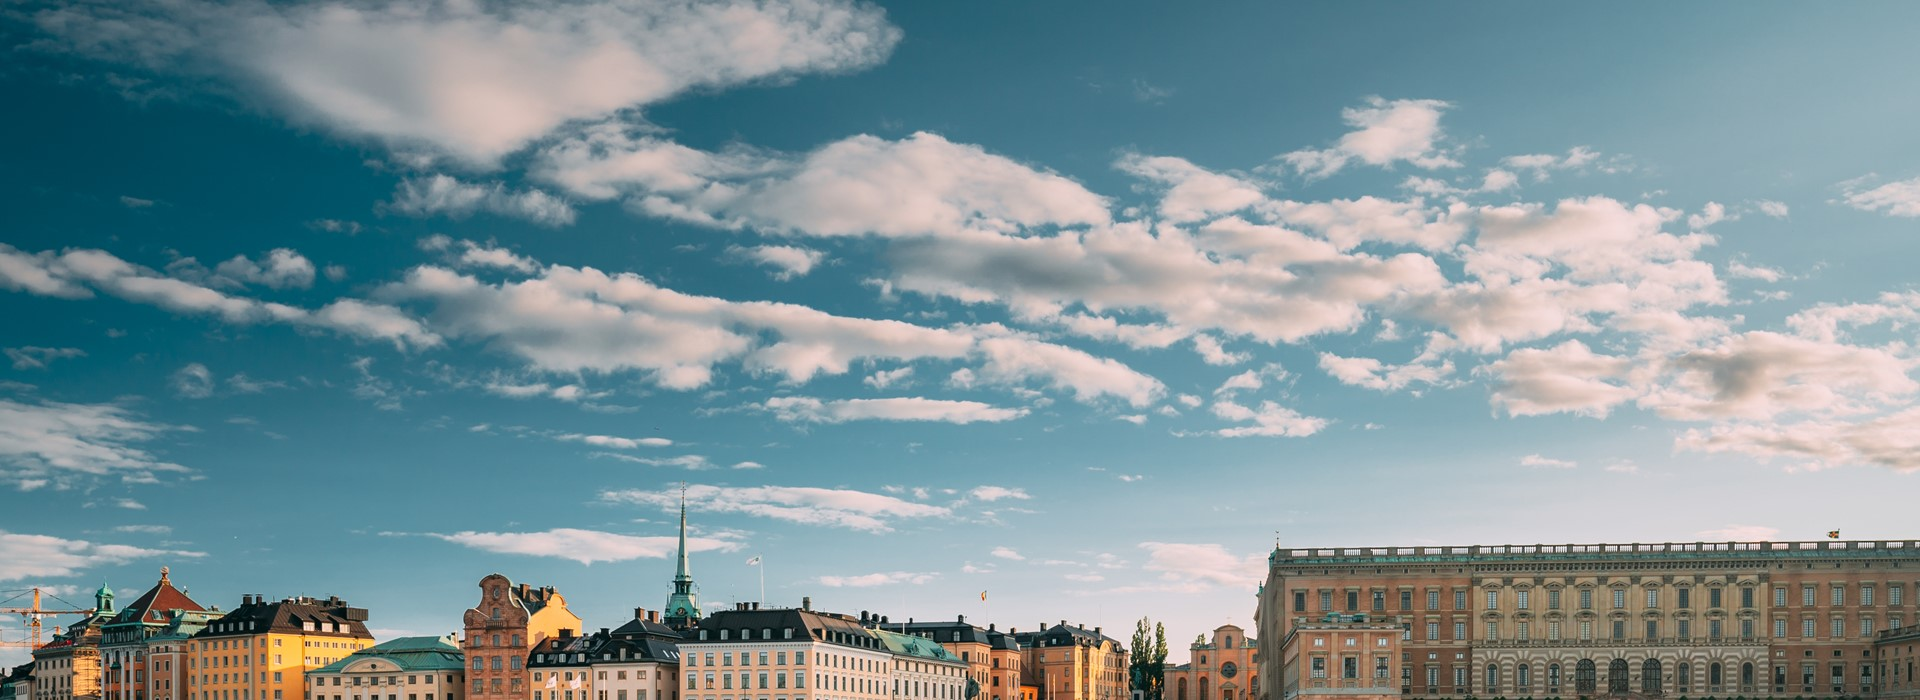 stockholm-sweden-scenic-famous-view-of-embankment-dmnux9z